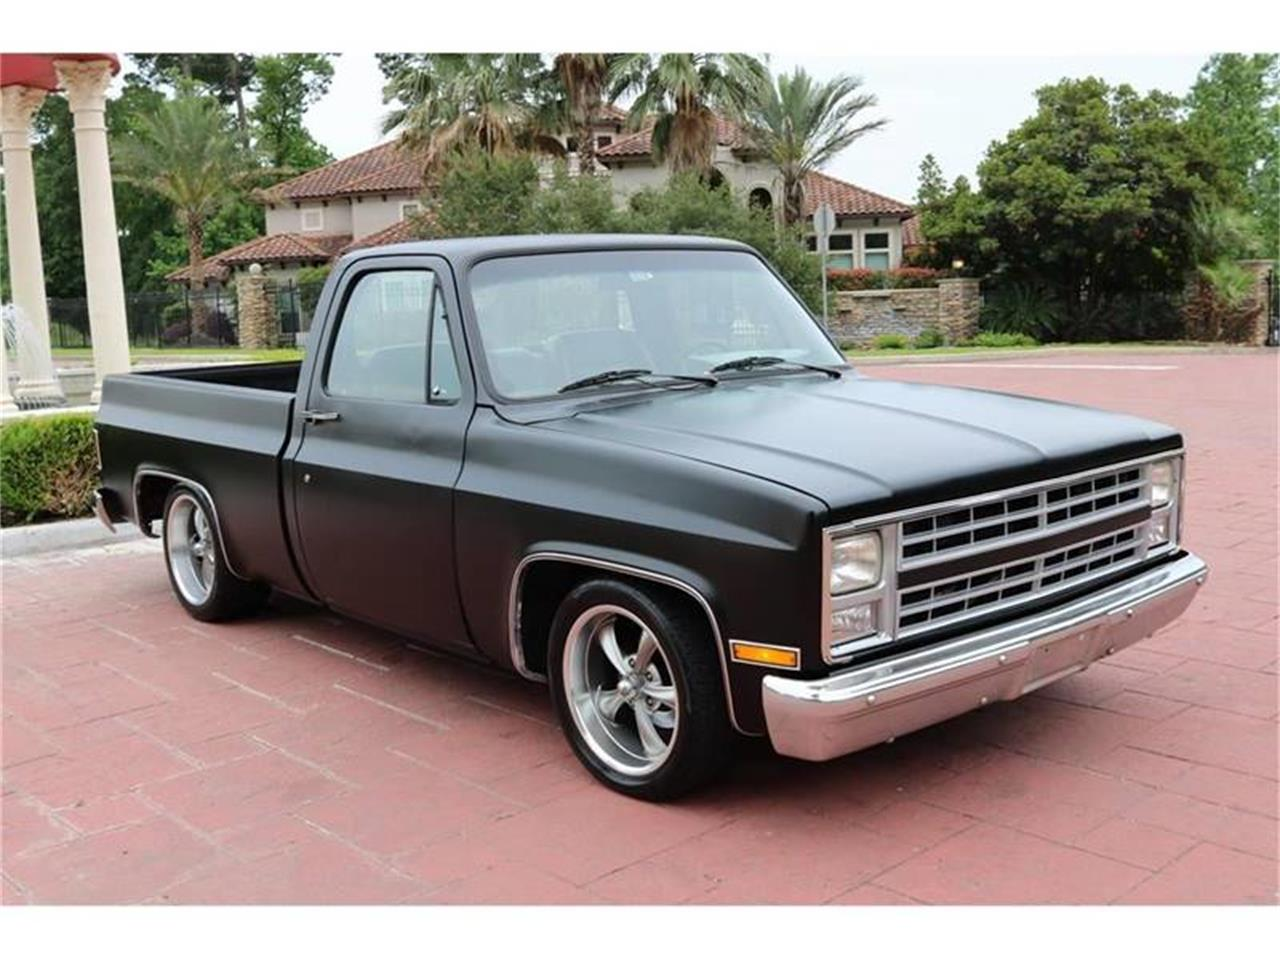 Large Picture of 1986 C/K 10 located in Conroe Texas - $21,900.00 - R114